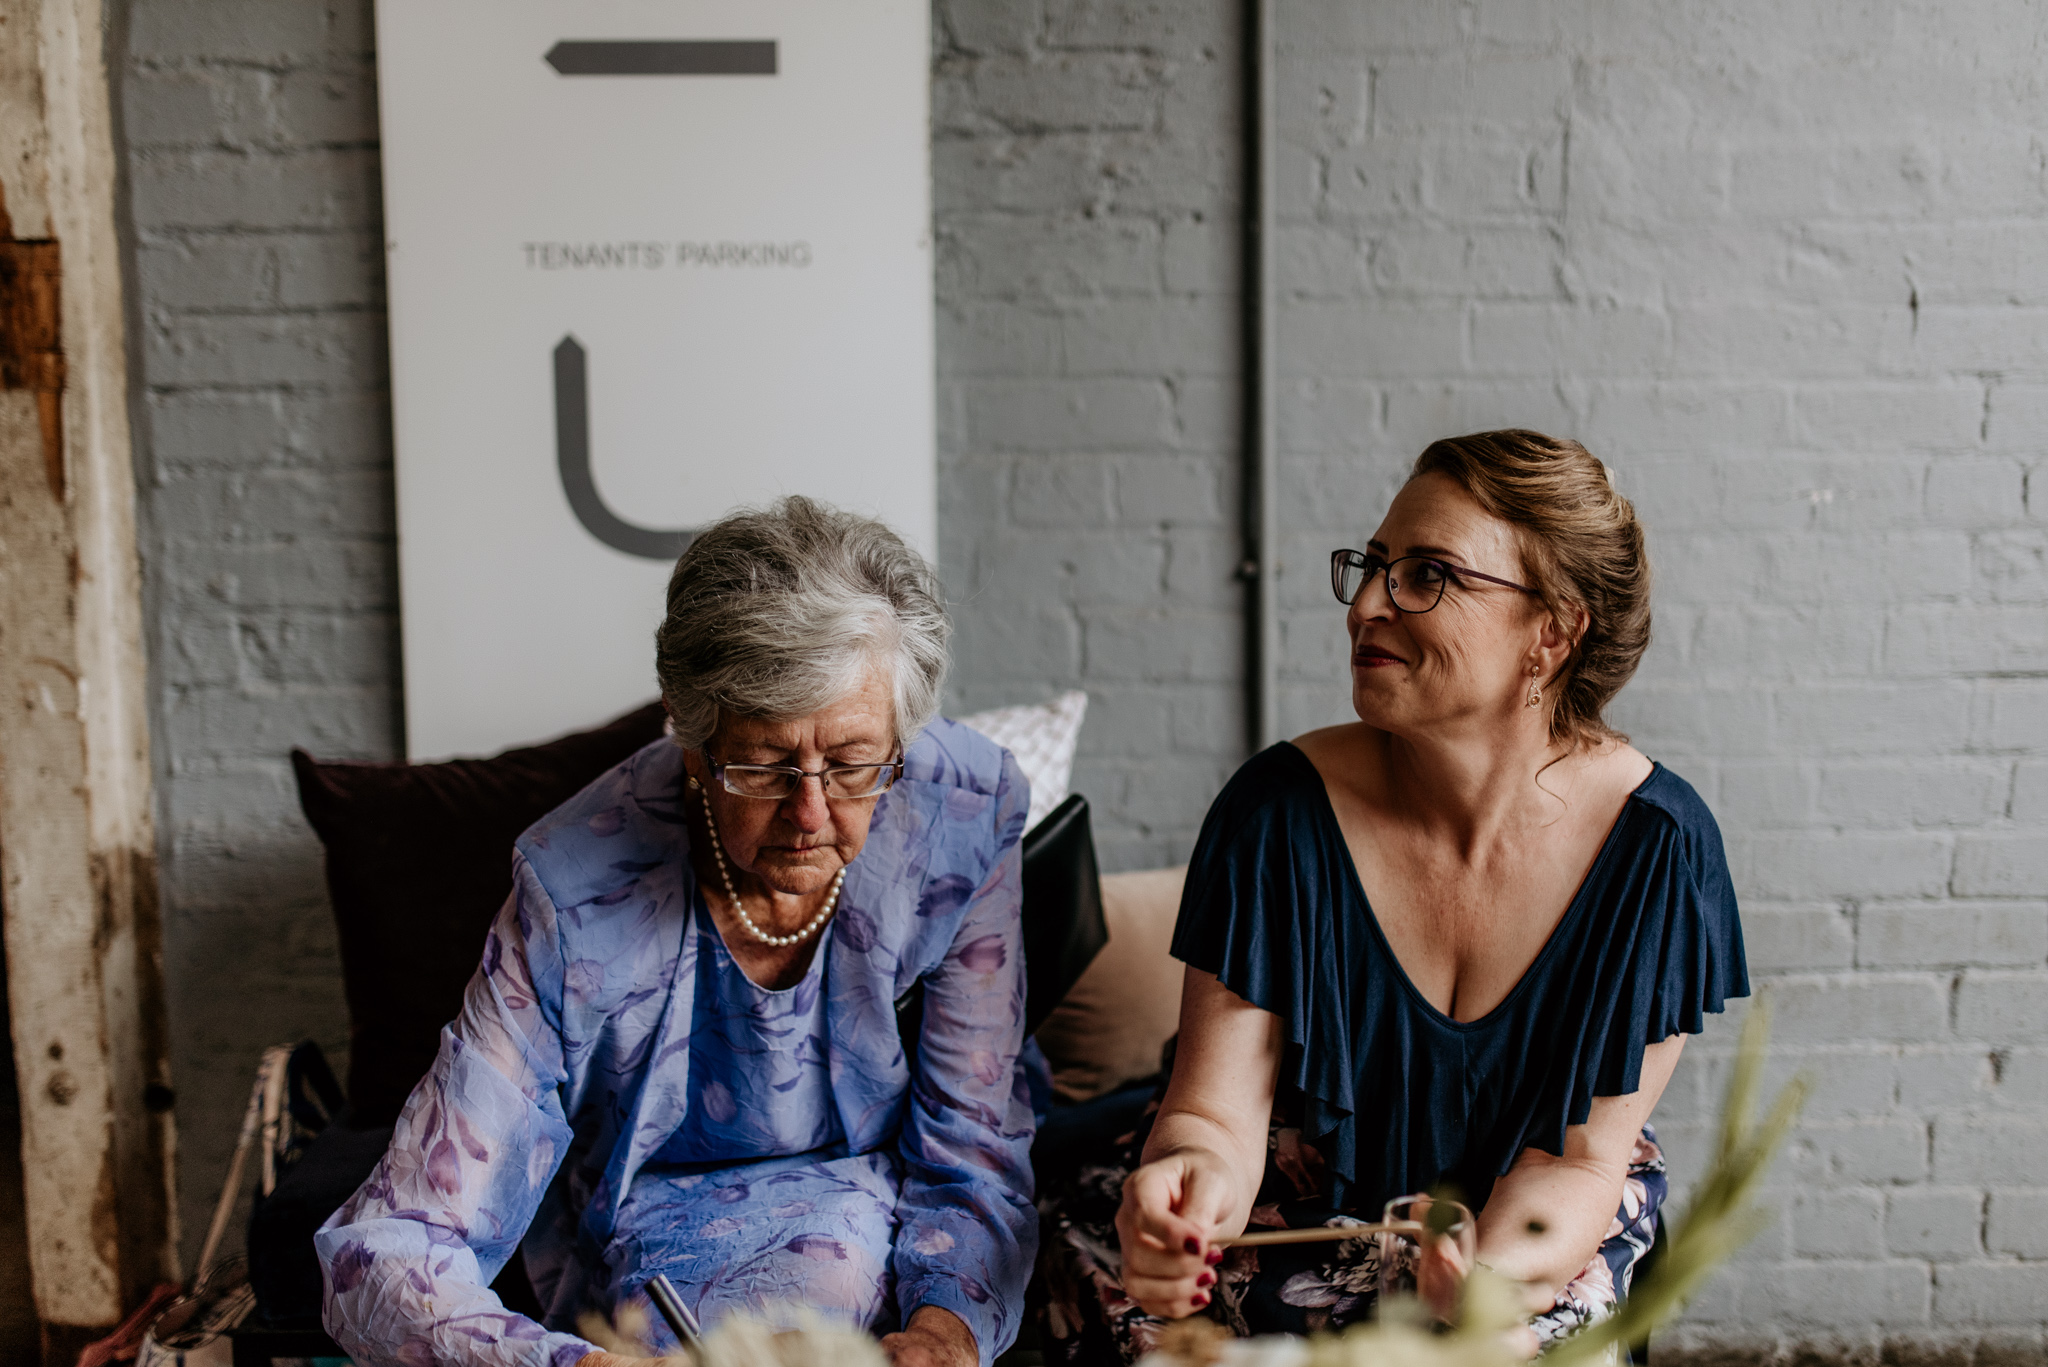 A mother and grandmother share wedding cake at a joburg wedding in Maboneng